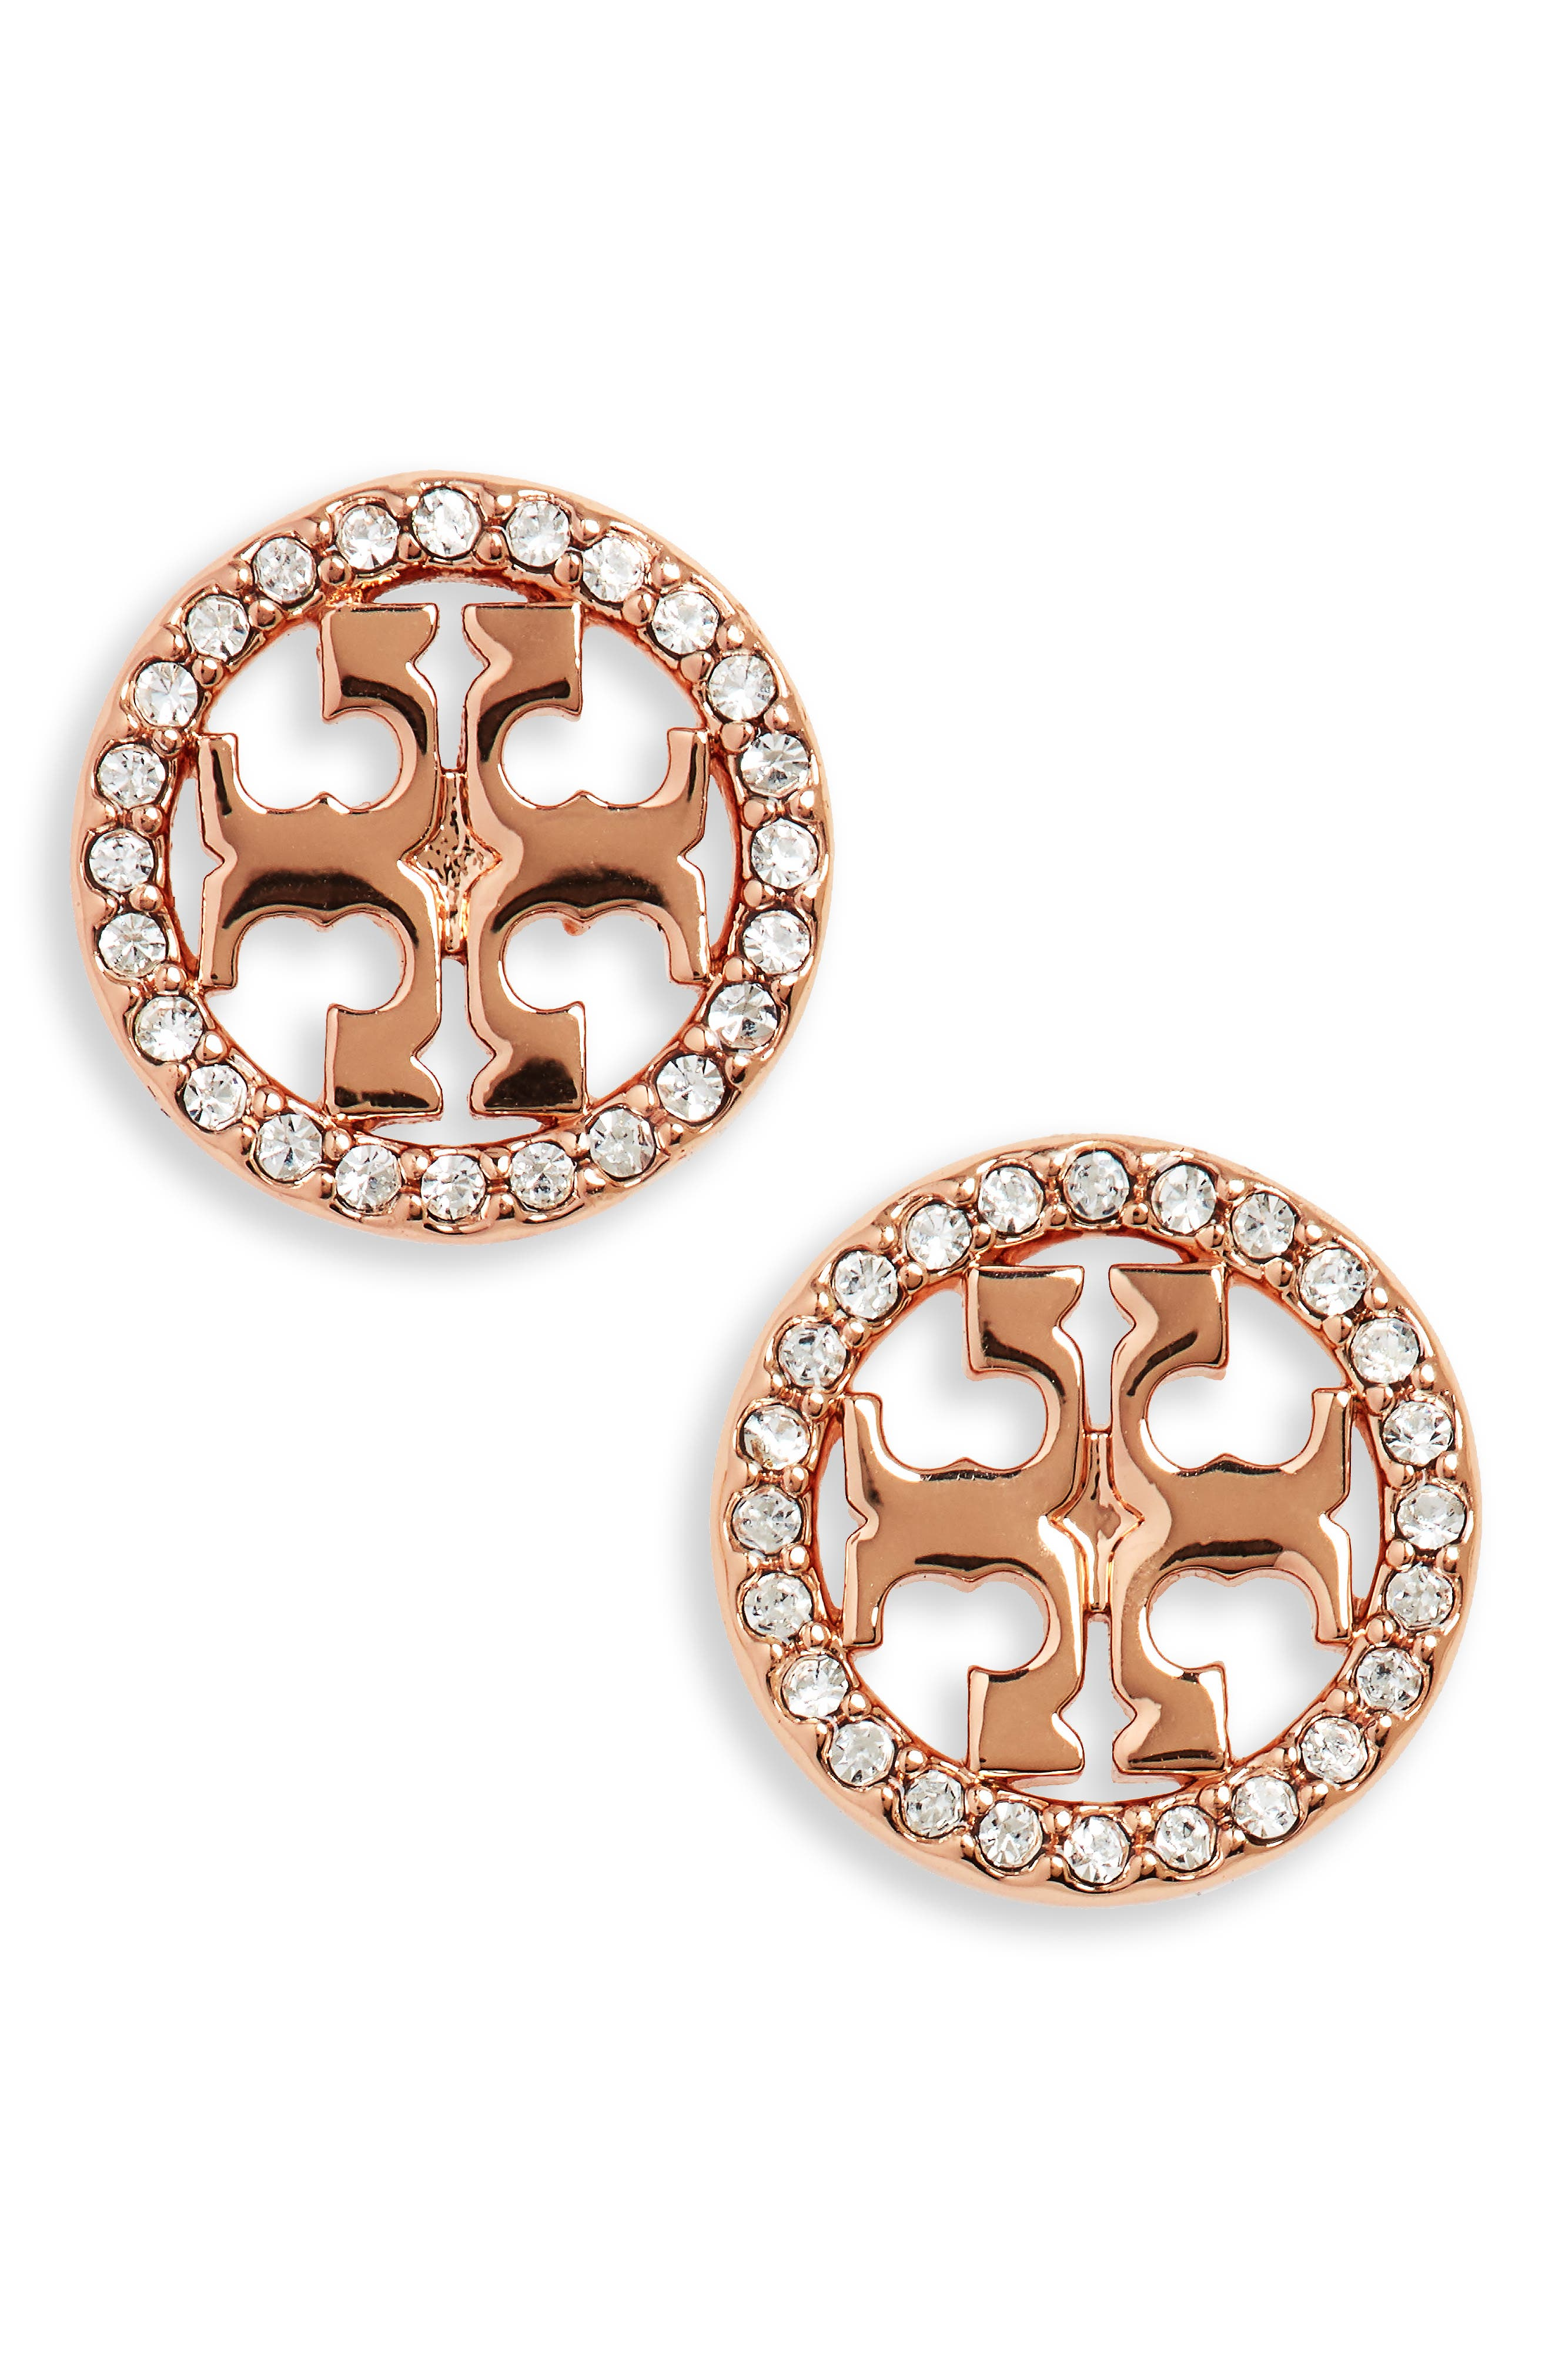 TORY BURCH Crystal Logo Circle Stud Earrings, Main, color, ROSE GOLD/ CRYSTAL